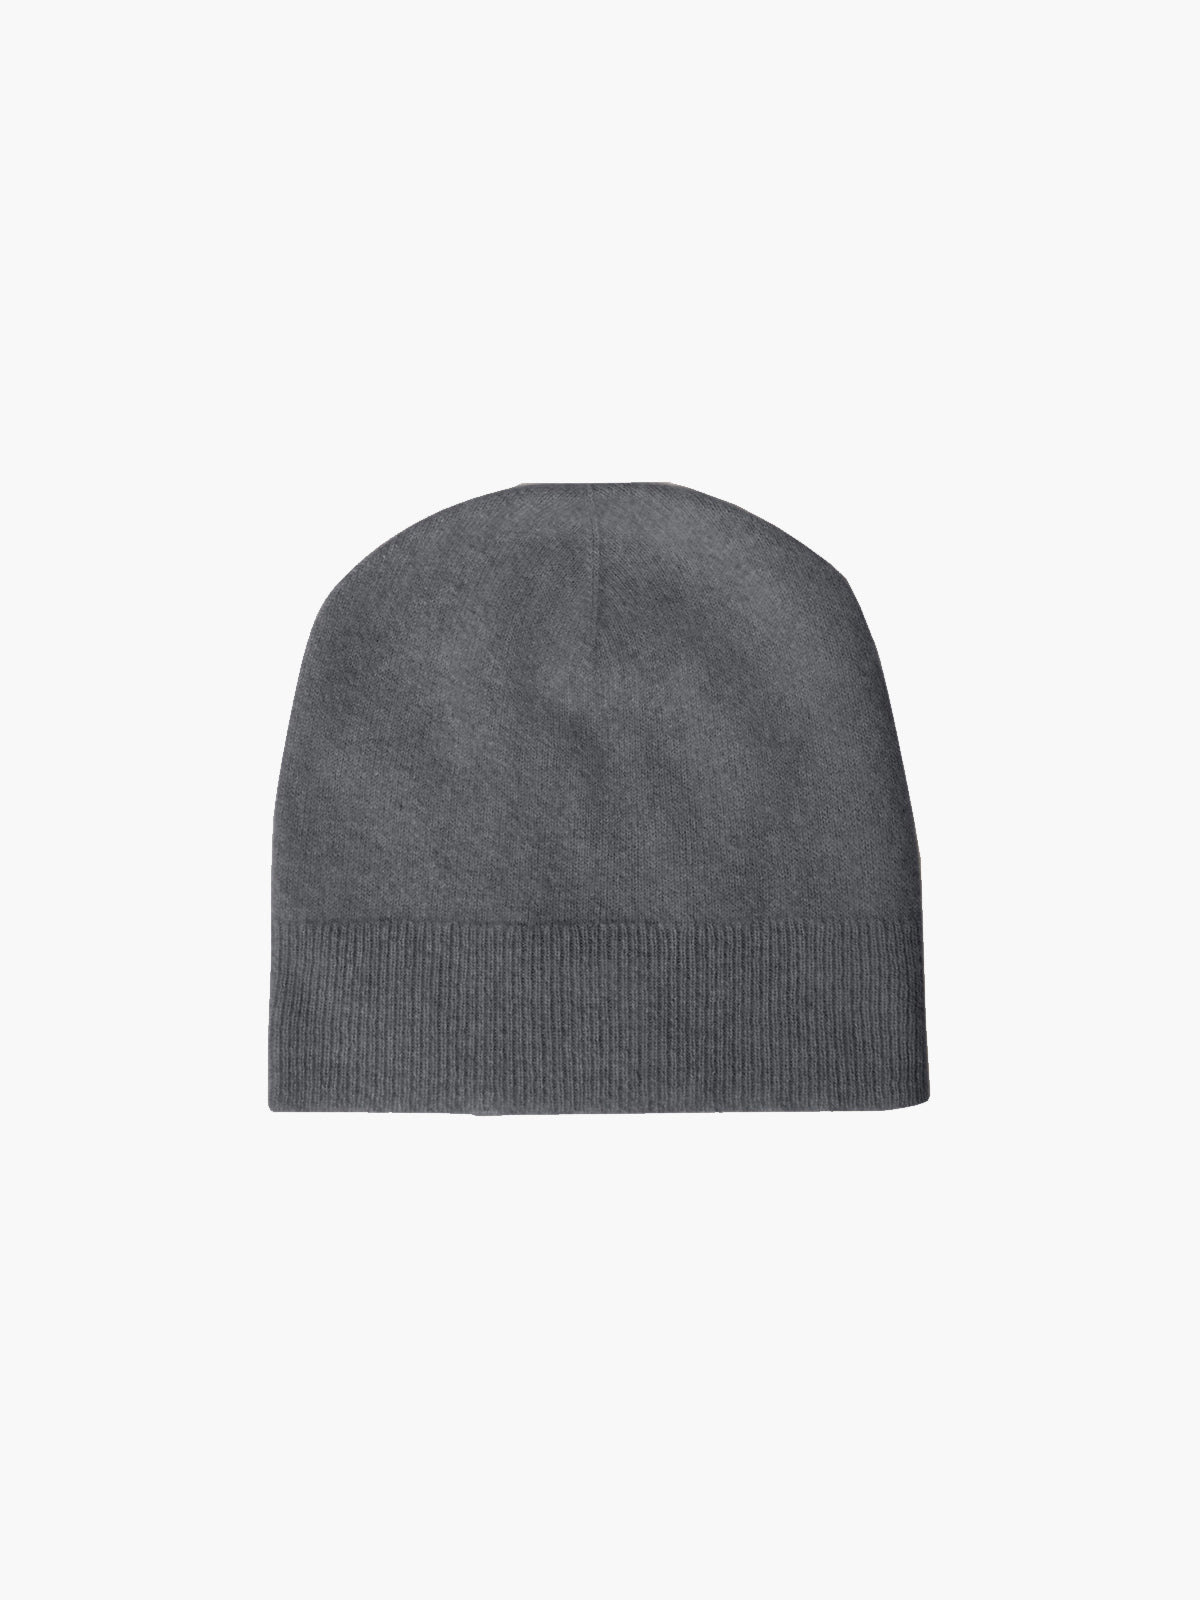 Alby Cashmere Beanie Hat | Charcoal